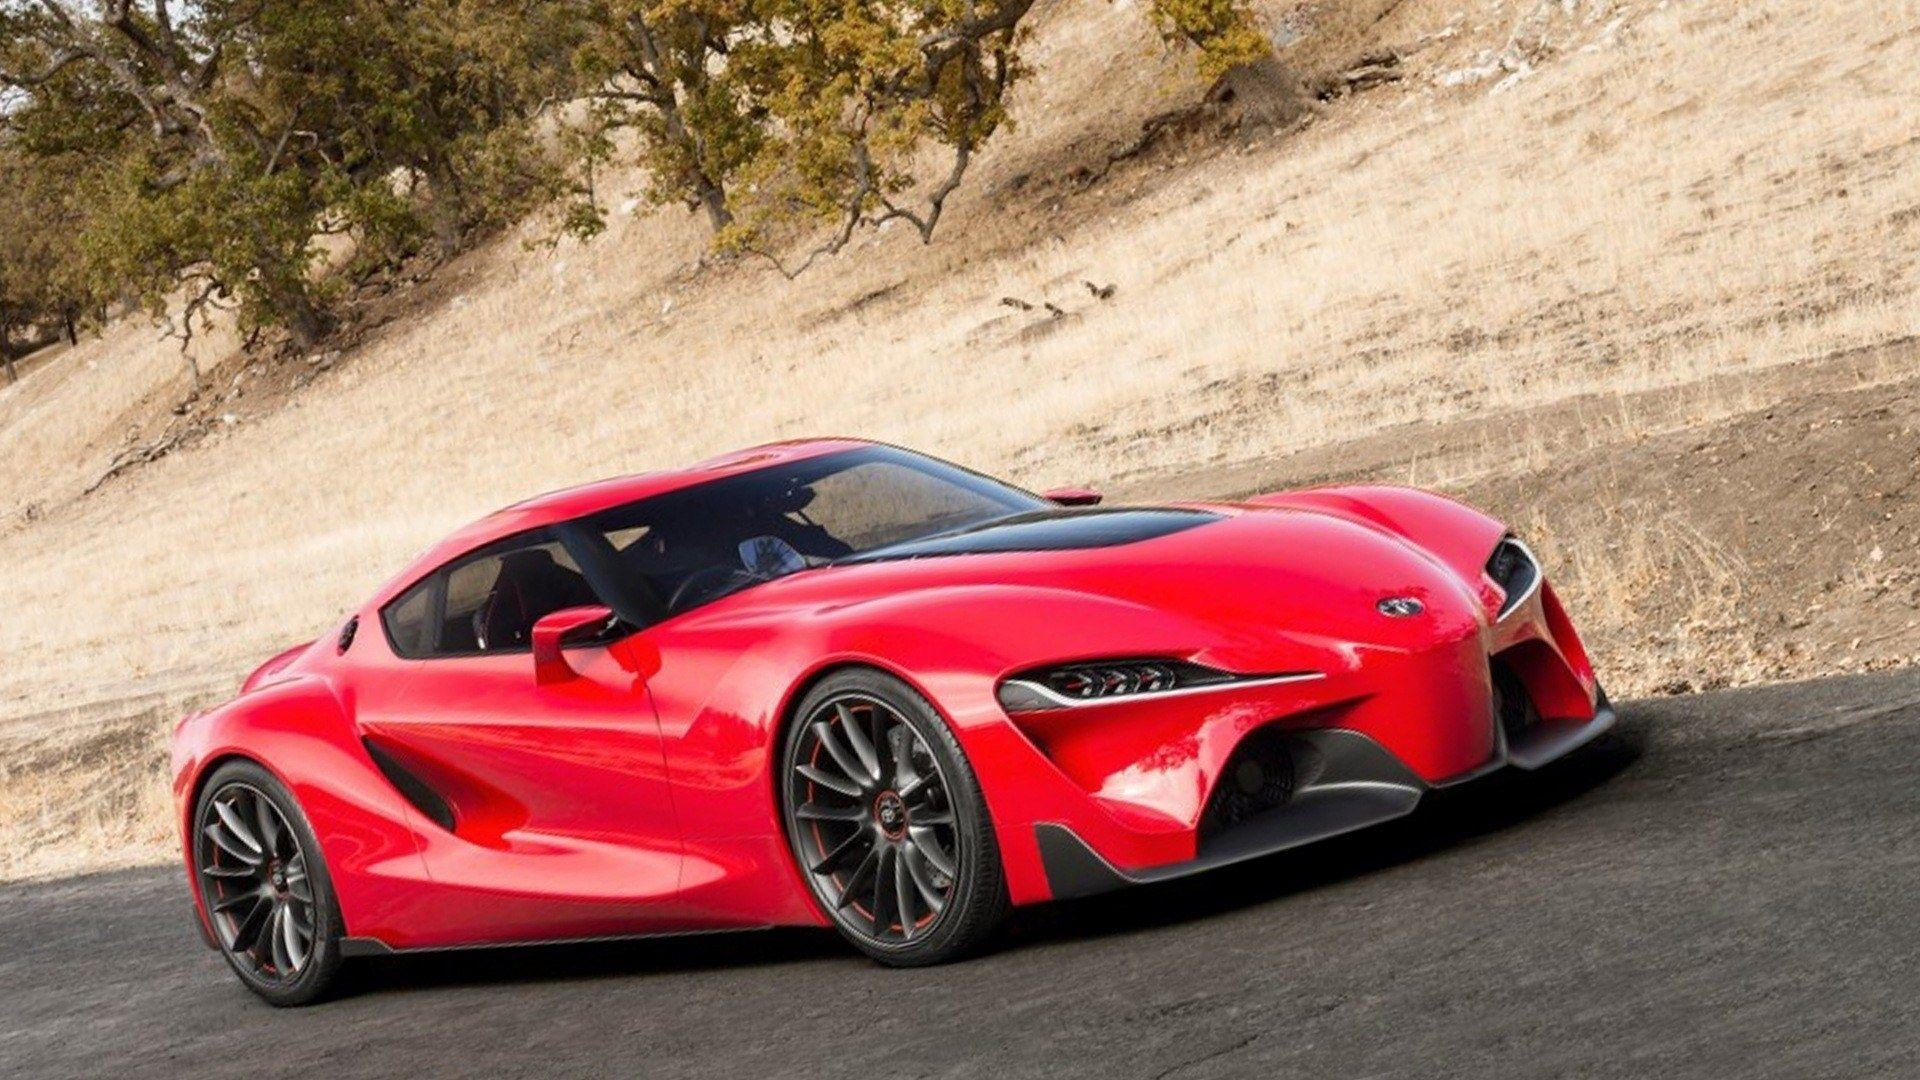 Toyota Ft1 Price >> Toyota Supra 2020 Wallpapers - Wallpaper Cave